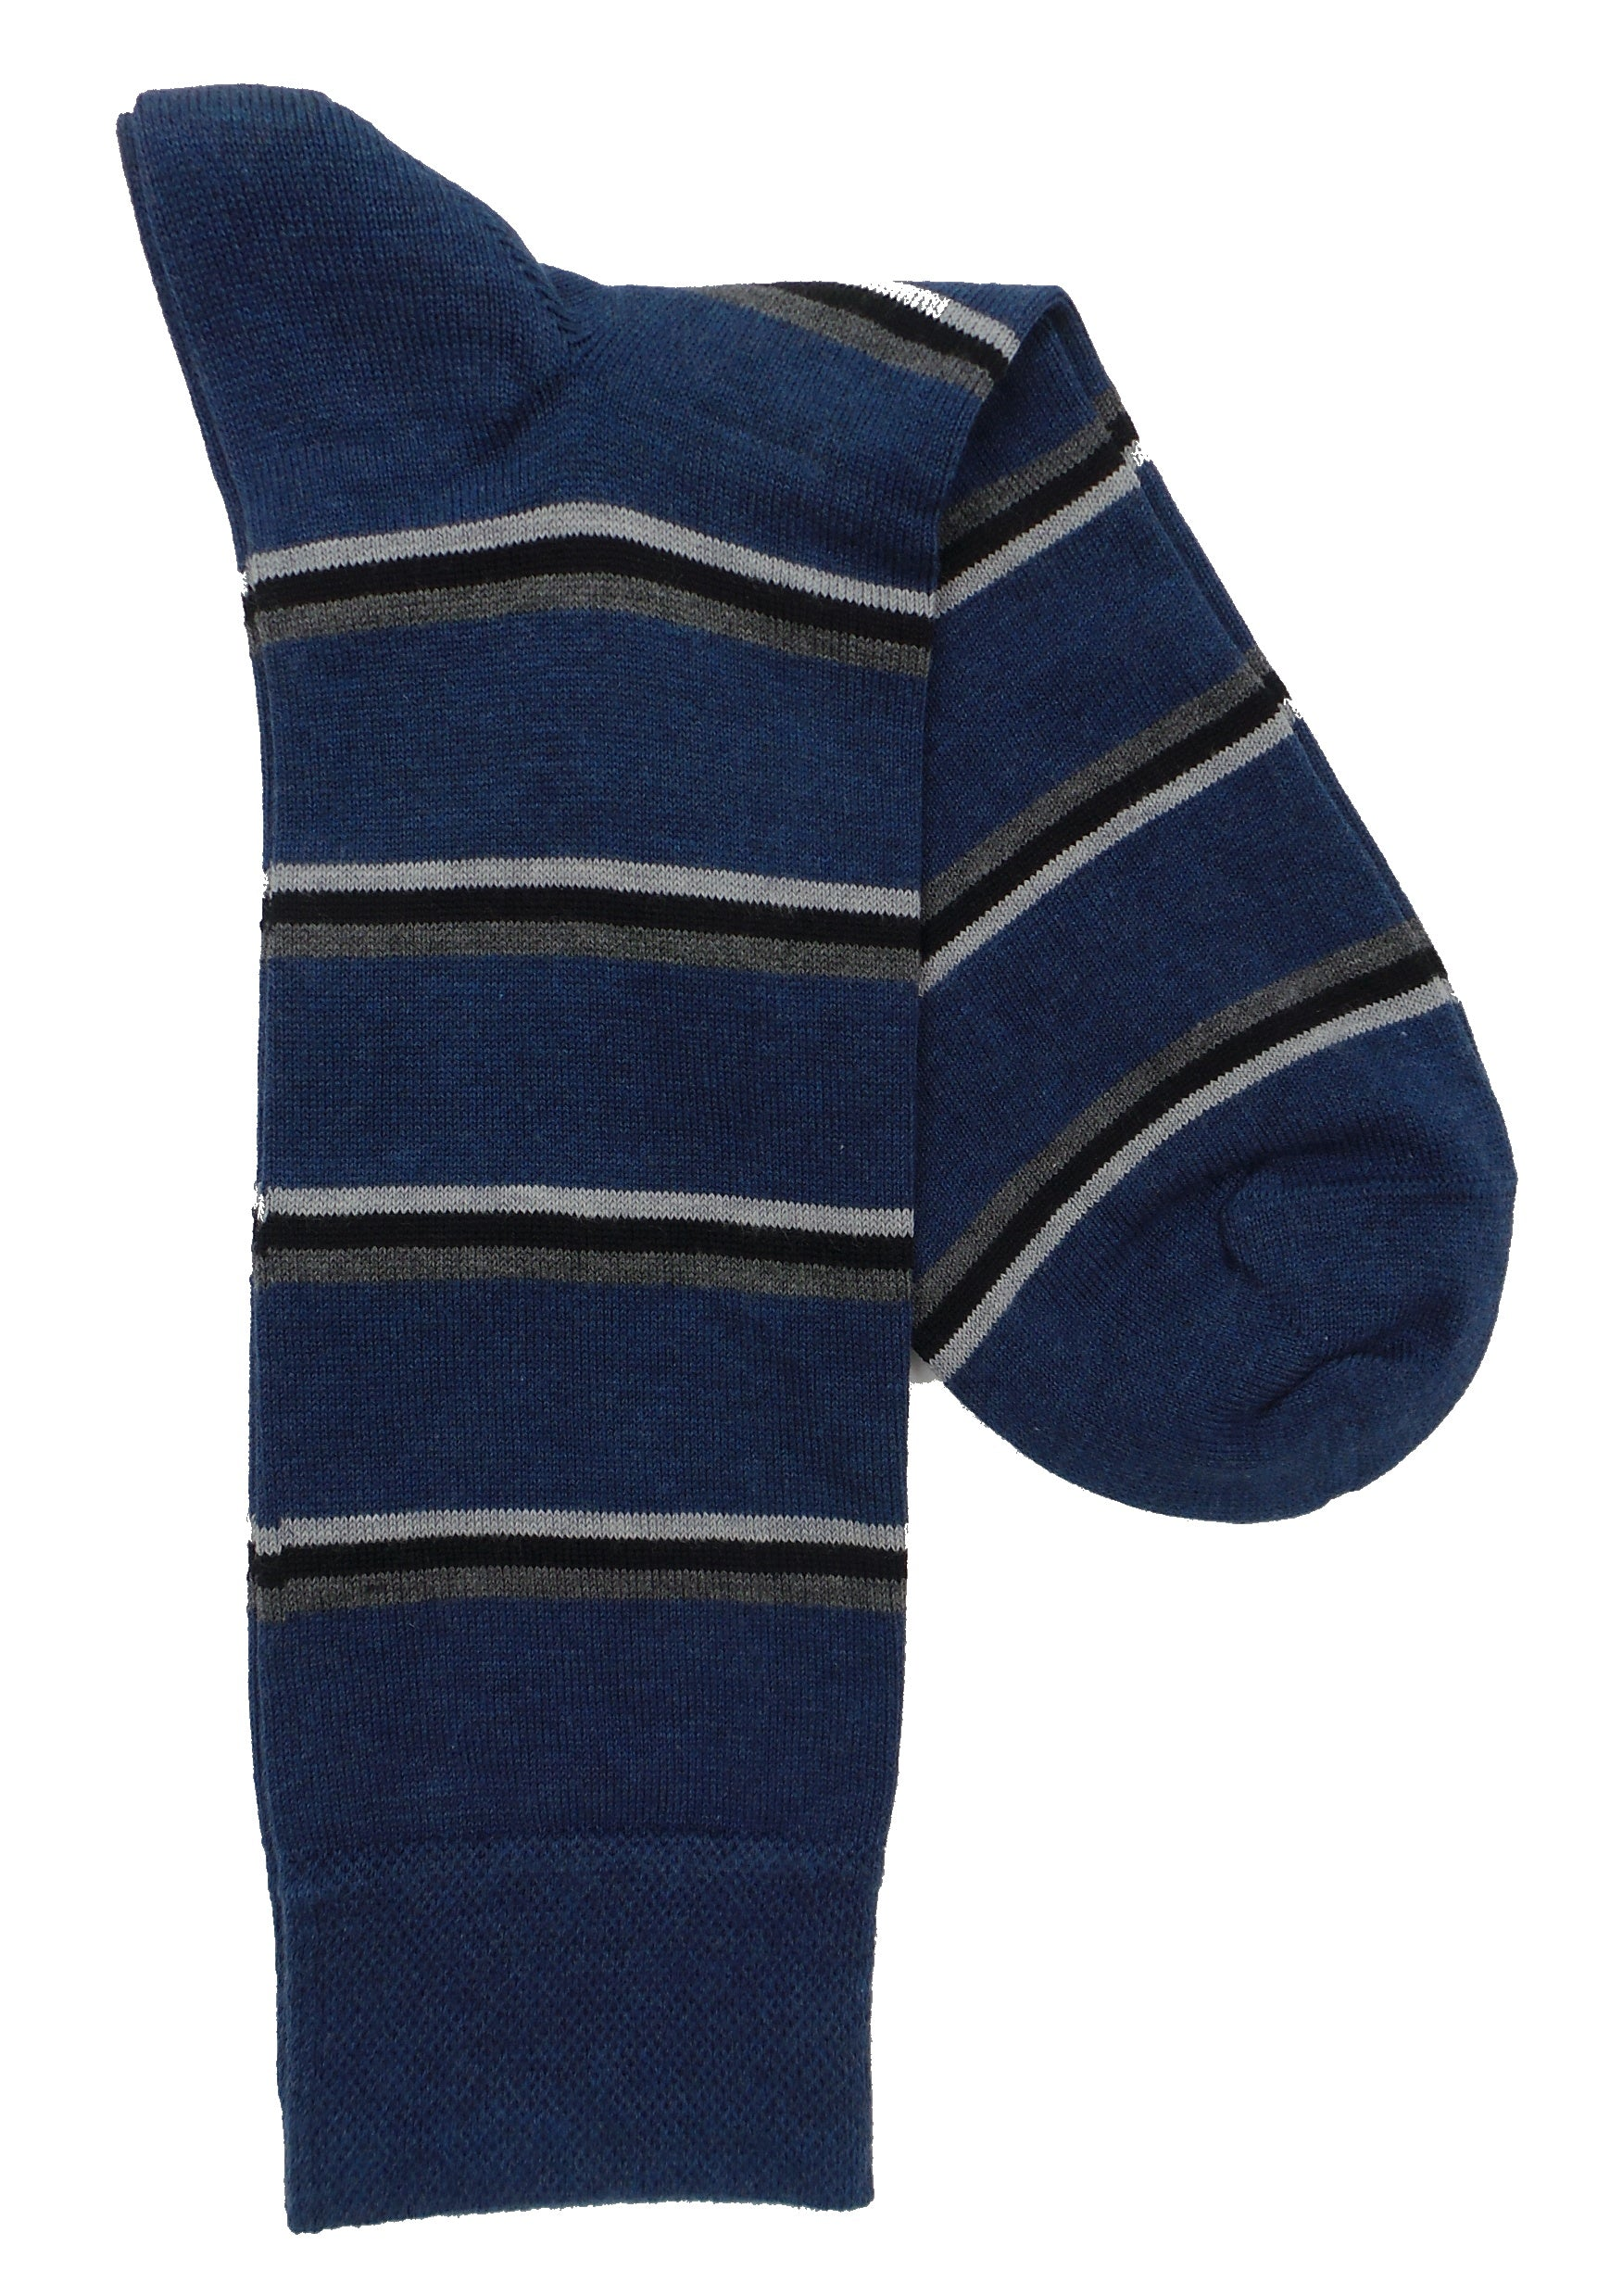 Marcoliani 4404 Pima Cotton Easy Stripe Dress Socks